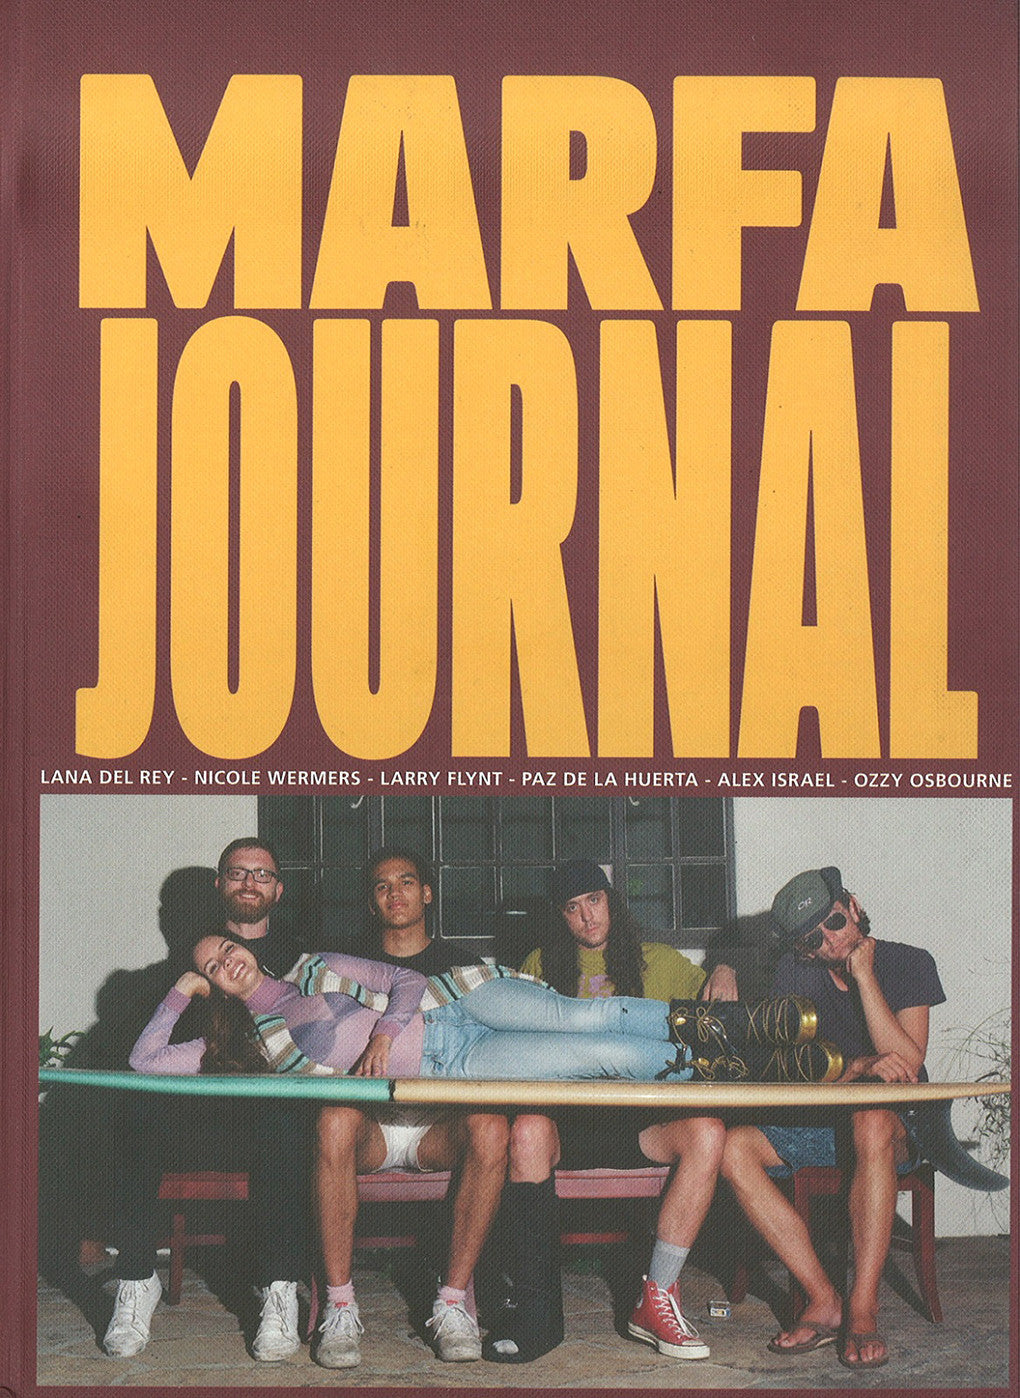 MARFA JOURNAL 04 (Lana Del Rey cover)